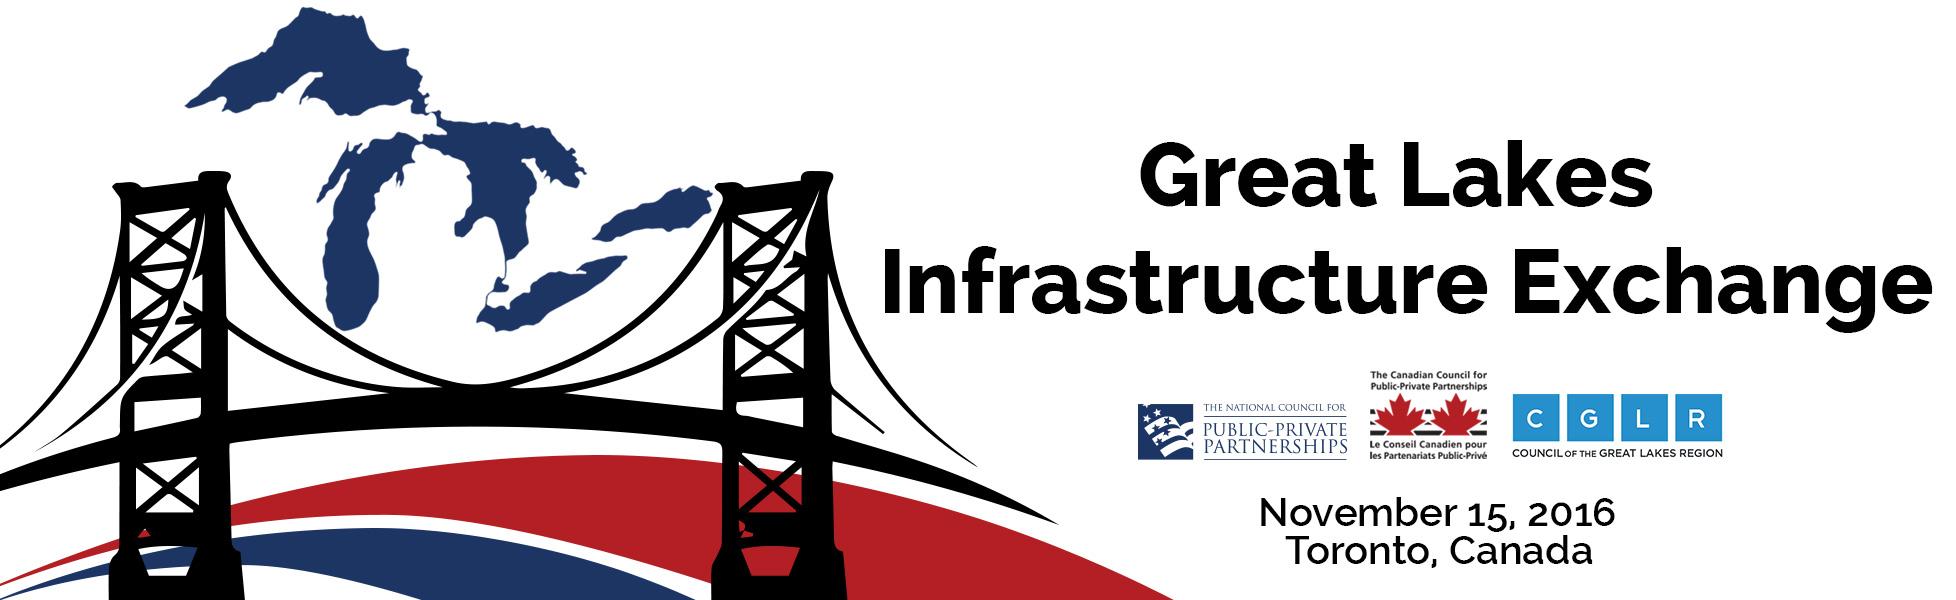 Great Lakes Infrastructure Exchange